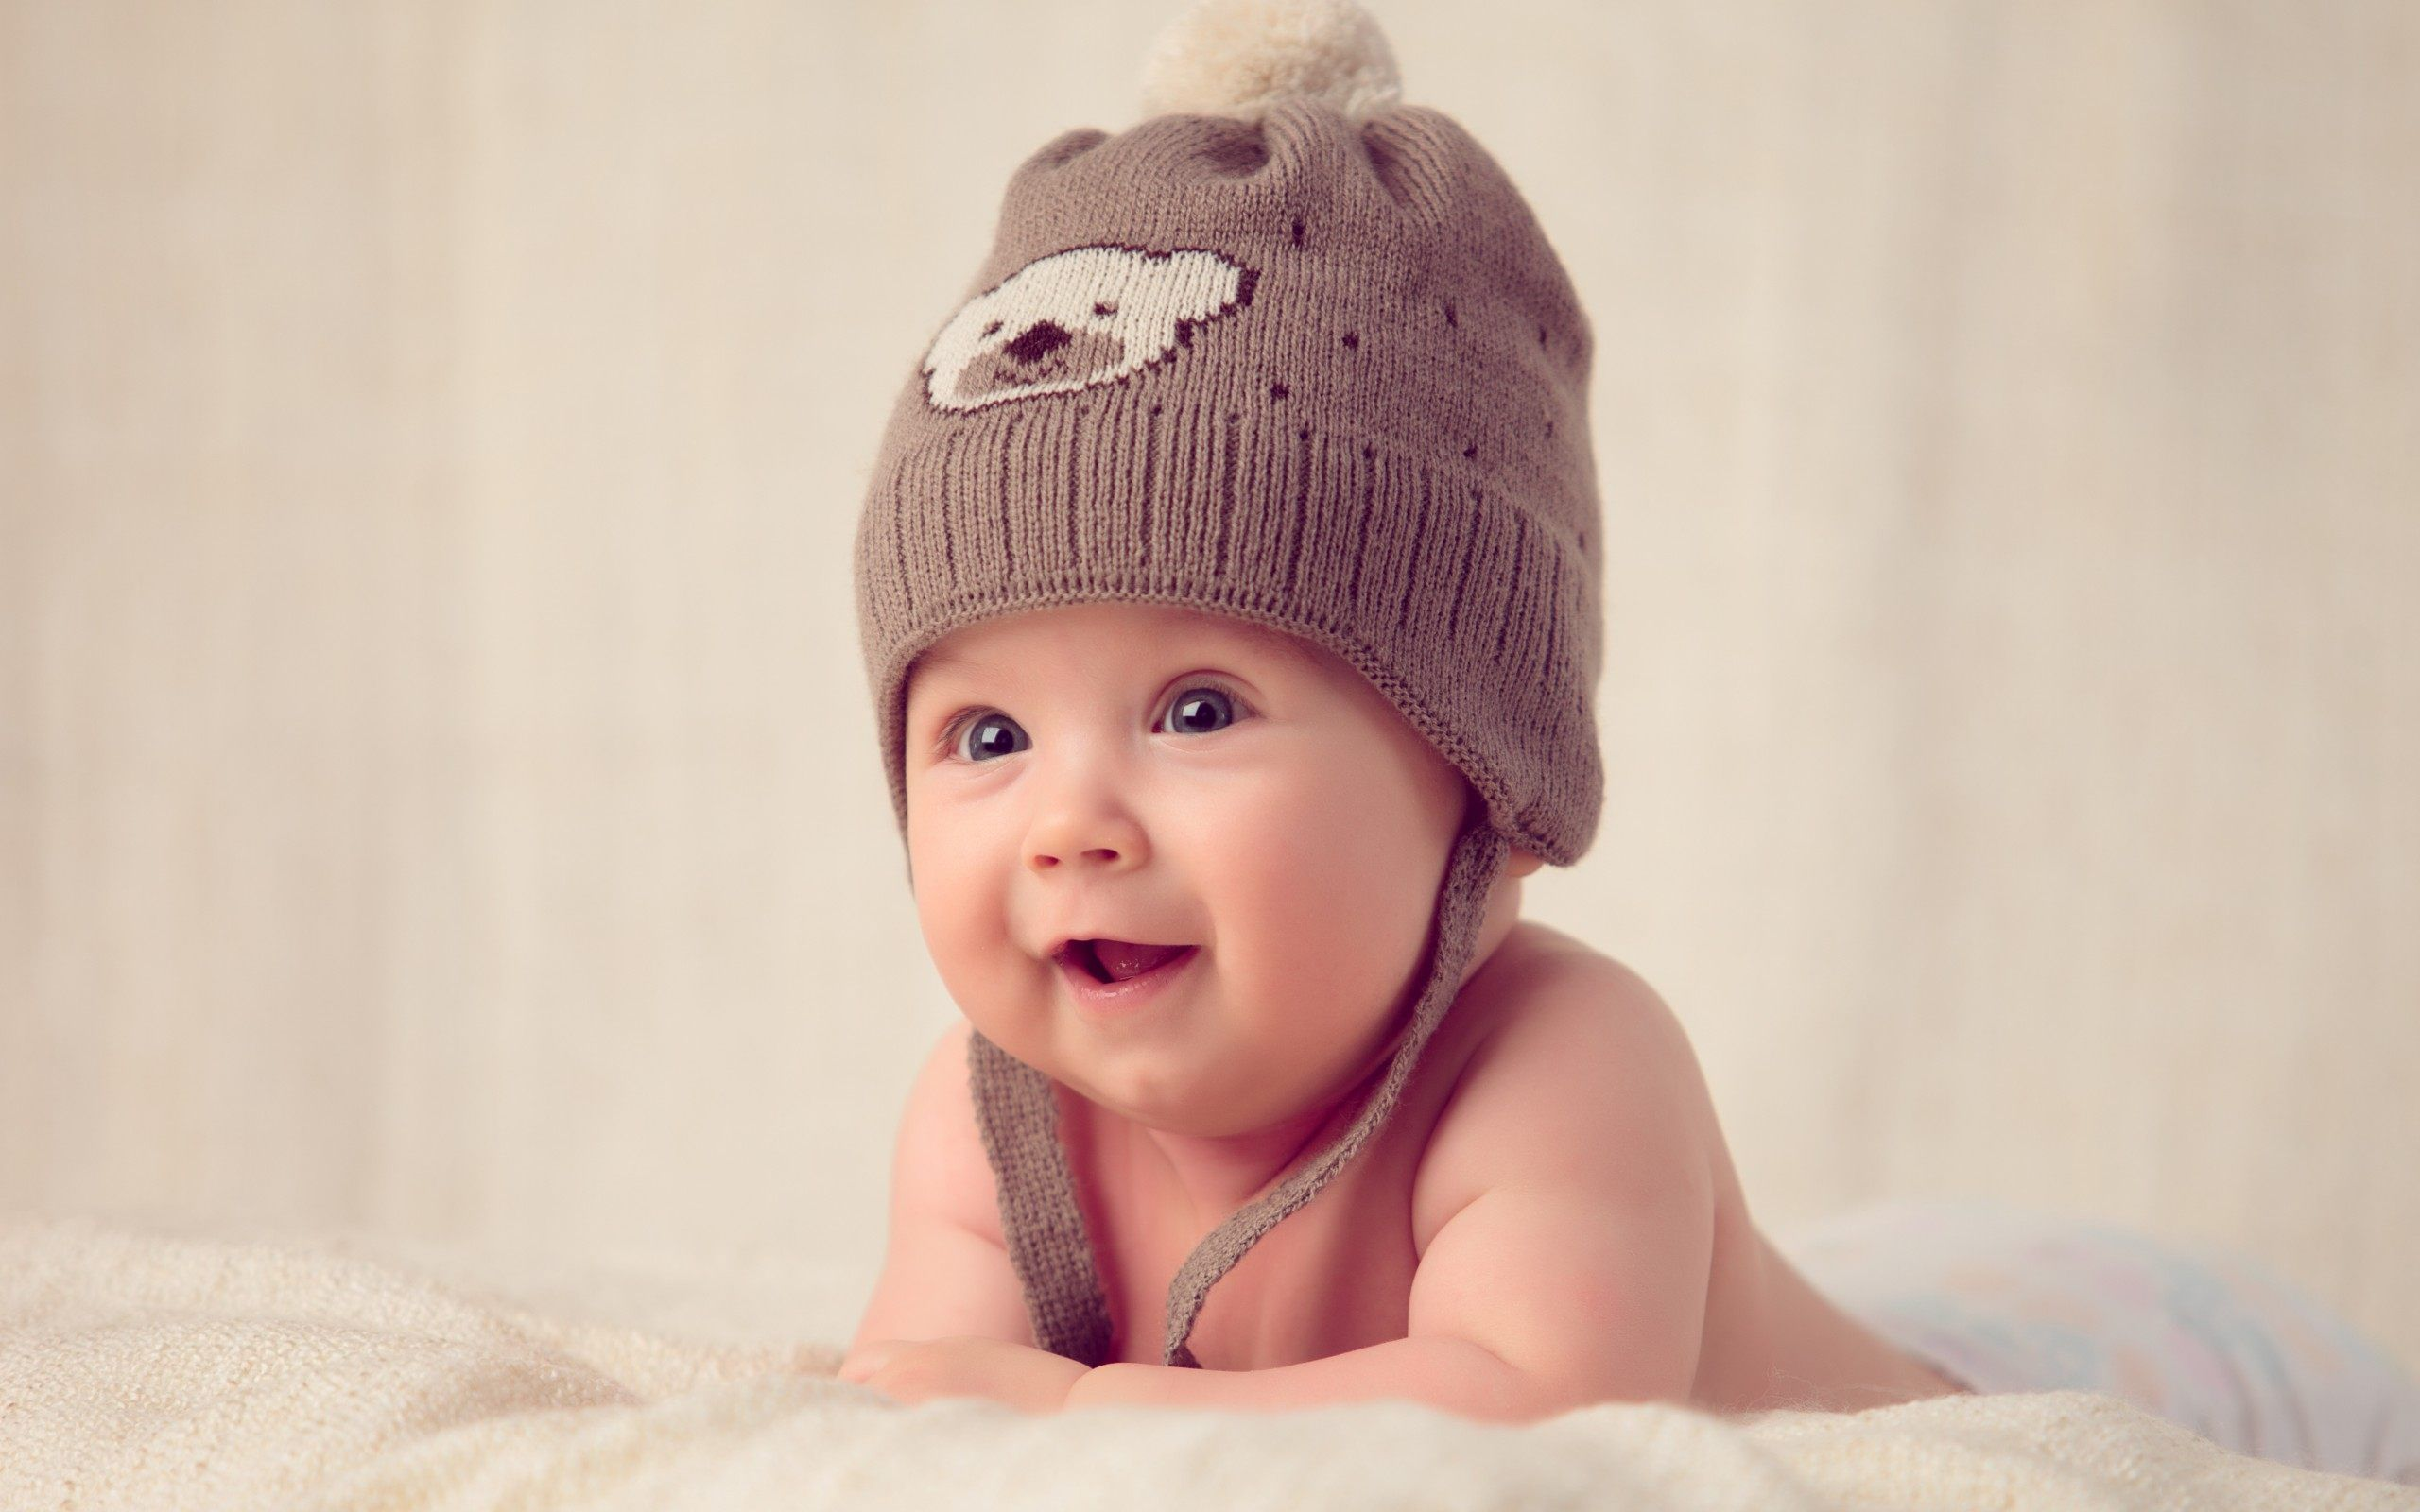 Download Free 150 Baby Wallpaper For Pregnant Wife